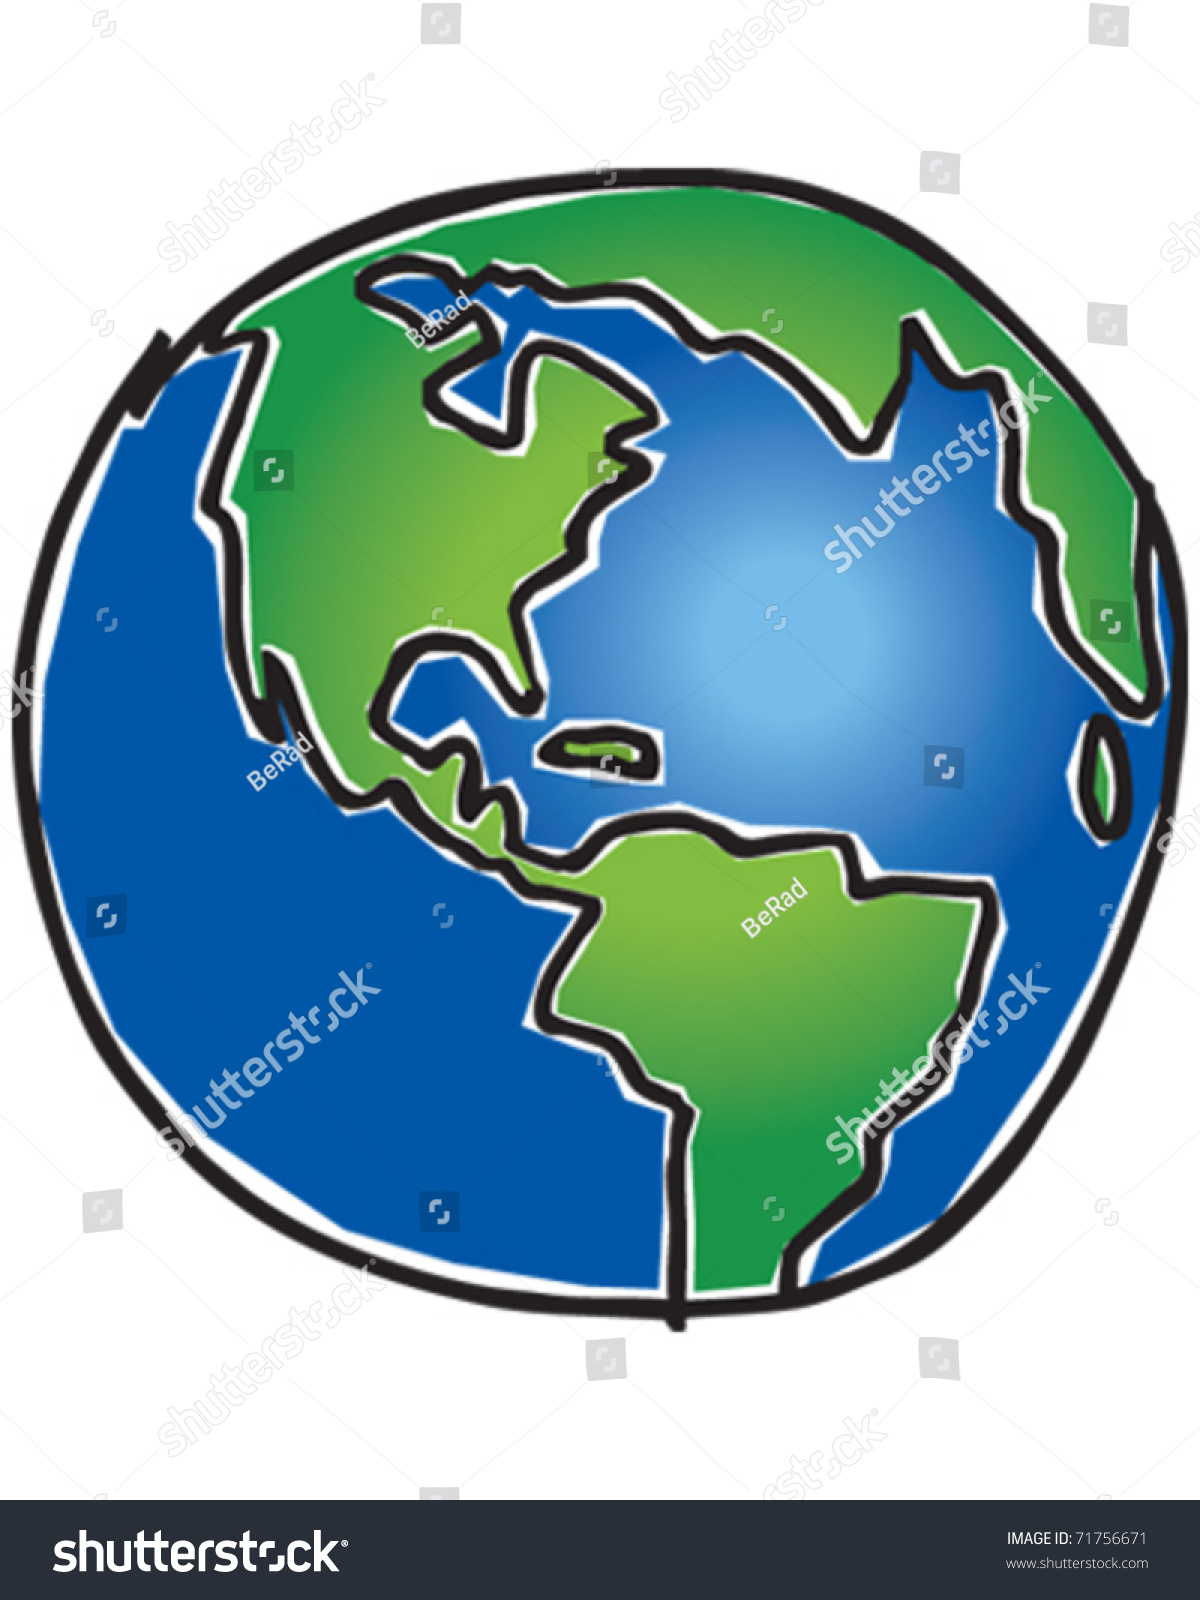 download imaging